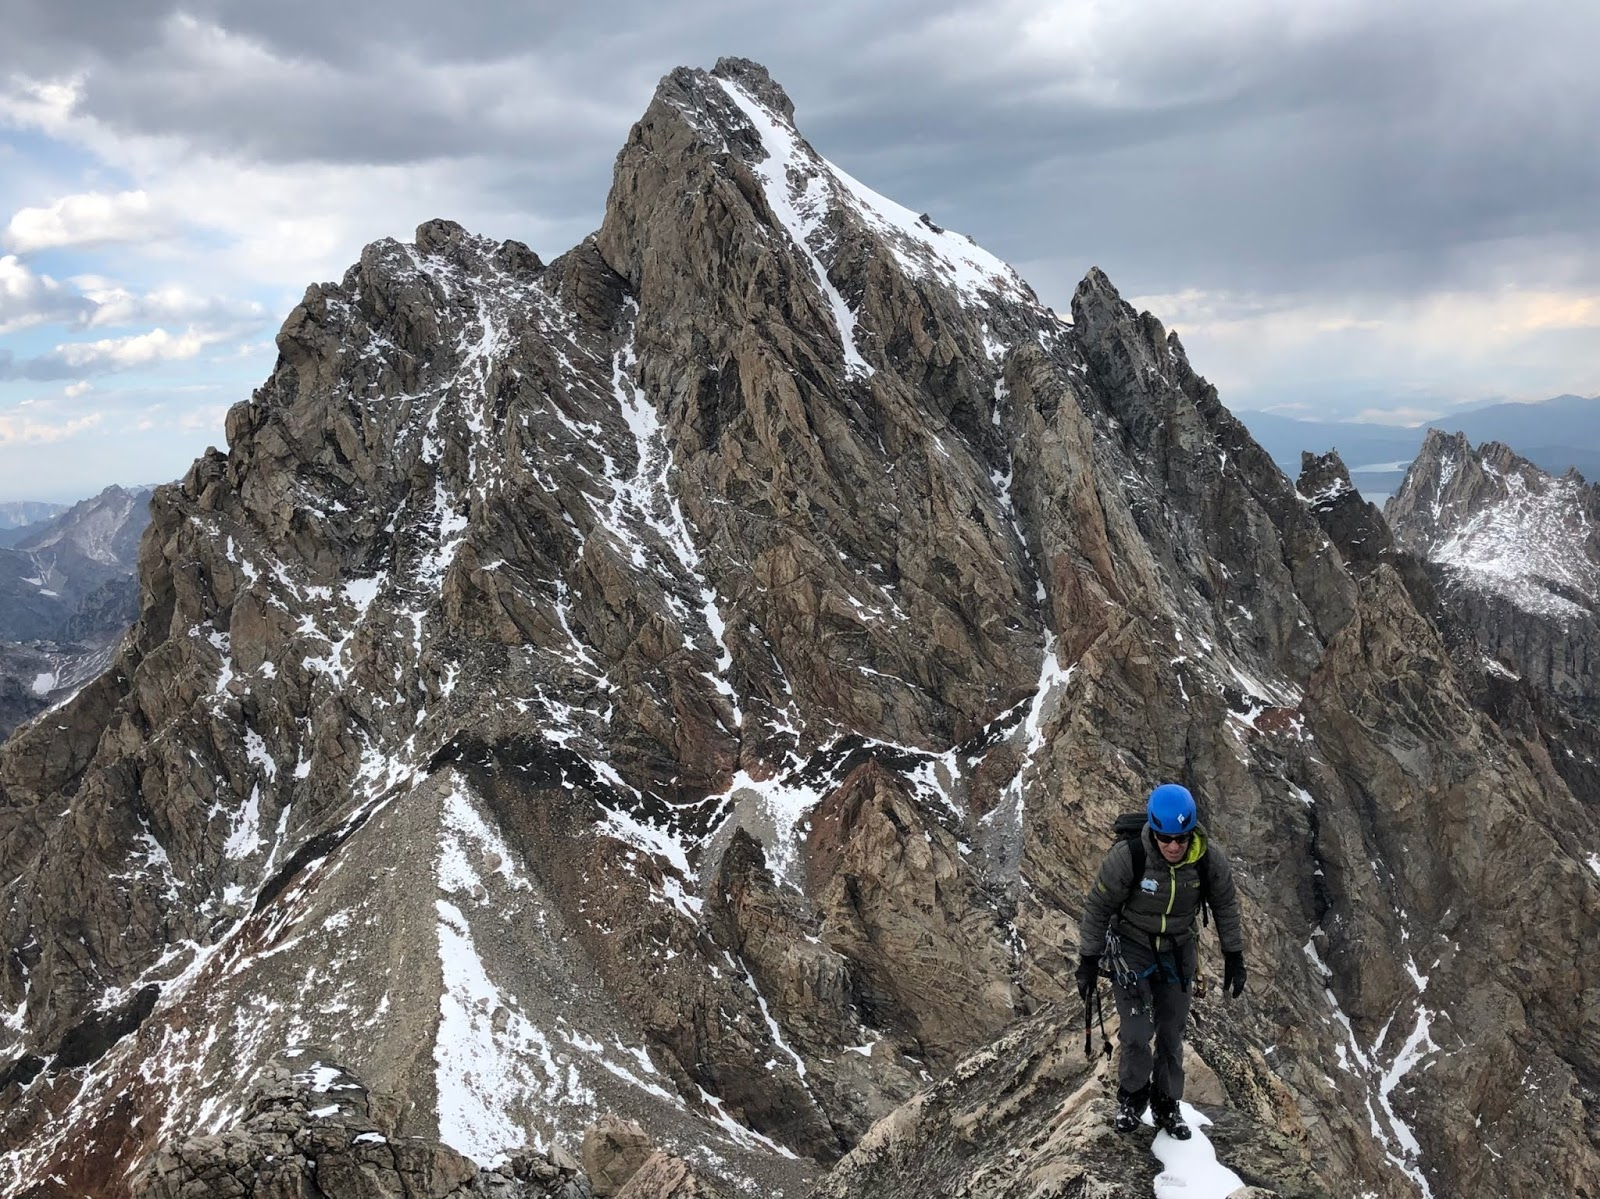 Climbing The Grand Teton with Exum Guides   Wes Chapmans Blog